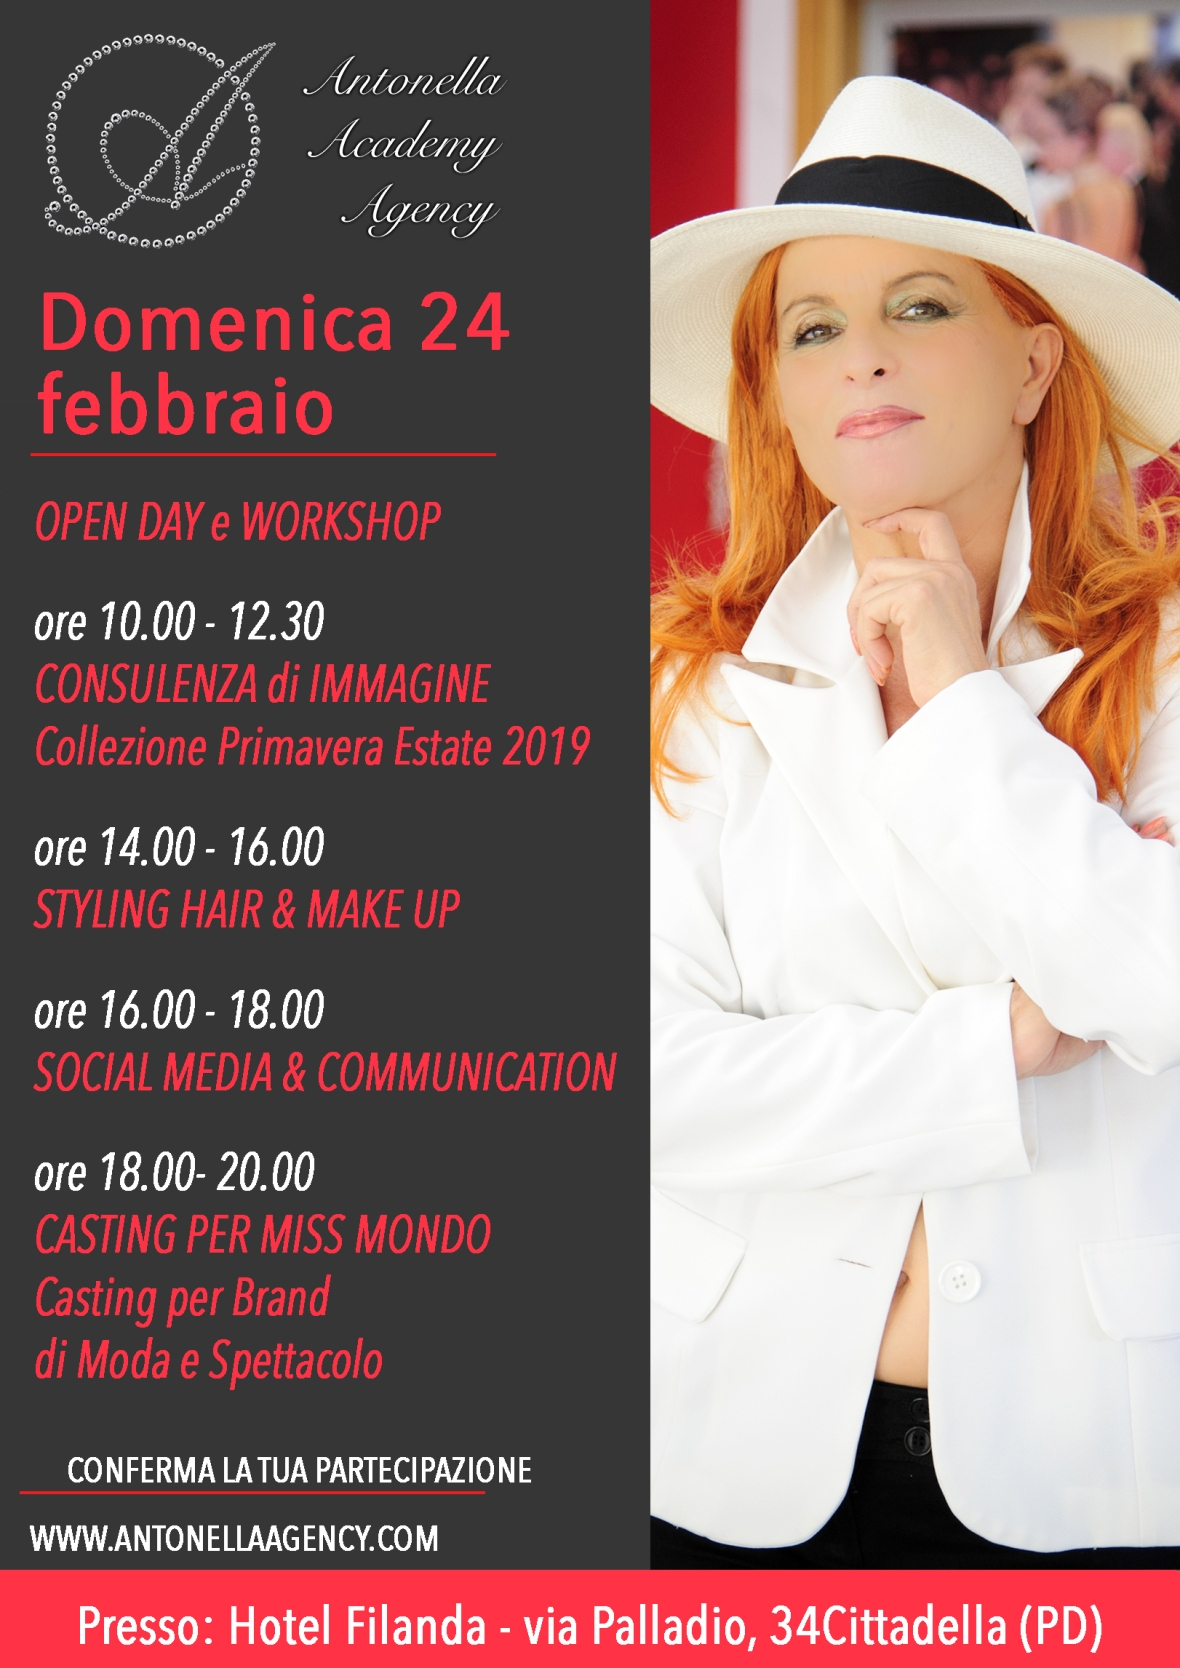 OPEN DAY, WORKSHOP e CASTING